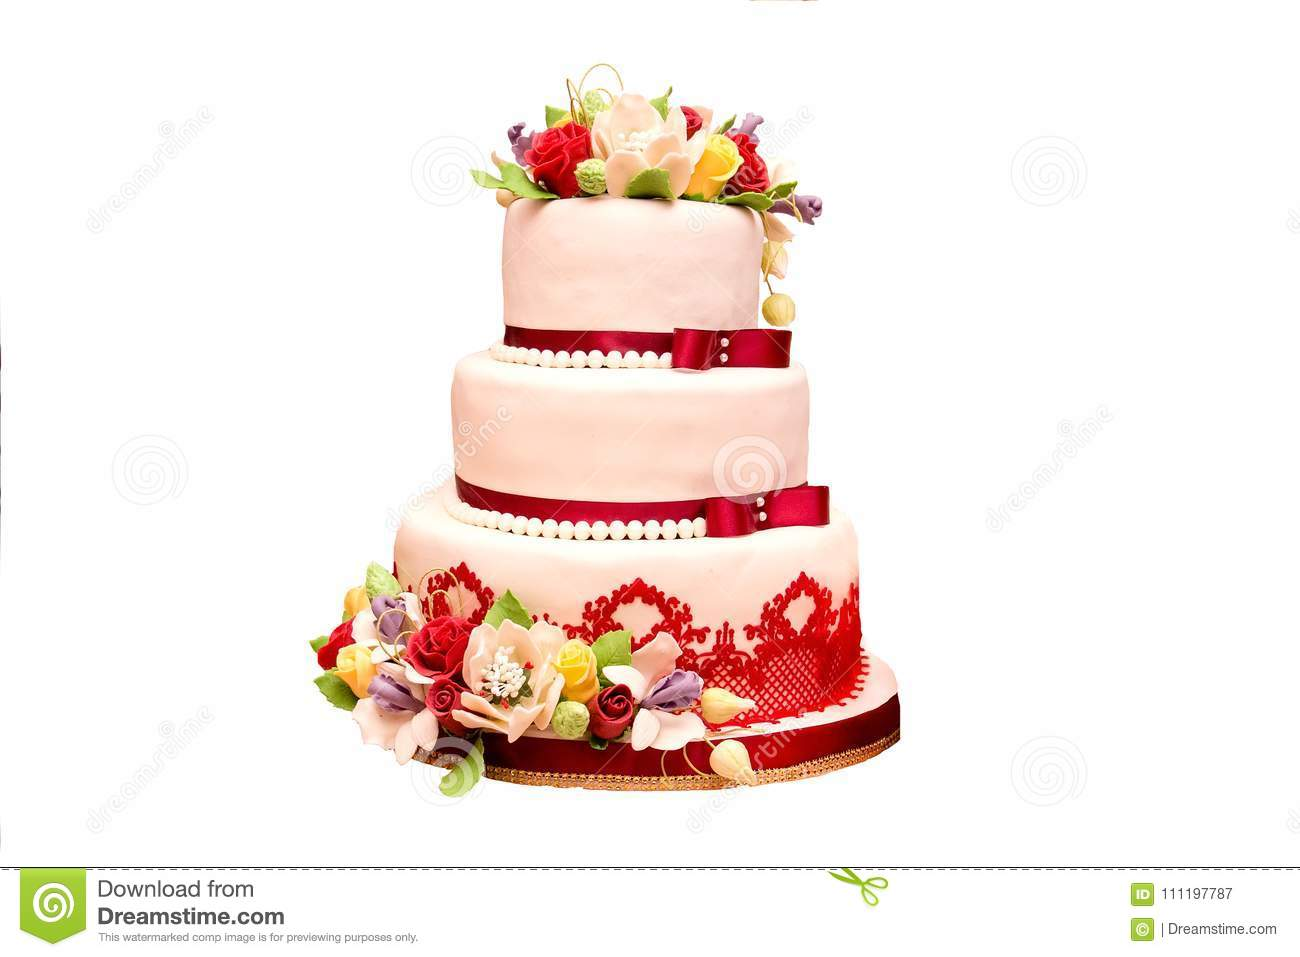 Wedding Cake In White-red Color With Flowers Stock Image - Image of ...